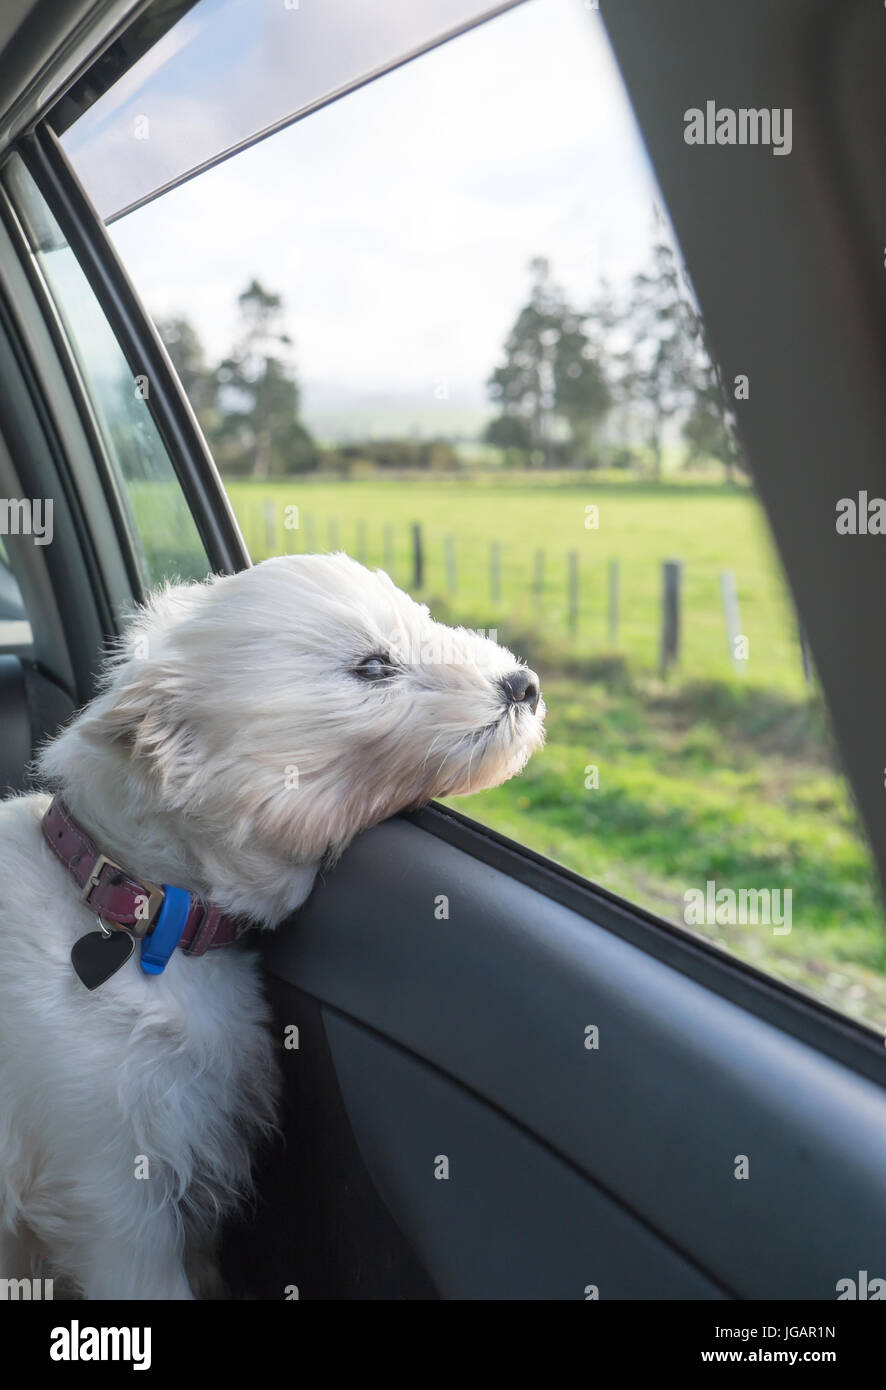 West highland terrier westie dog with head out of car window and wind in face, with rural scenery in New Zealand, - Stock Image